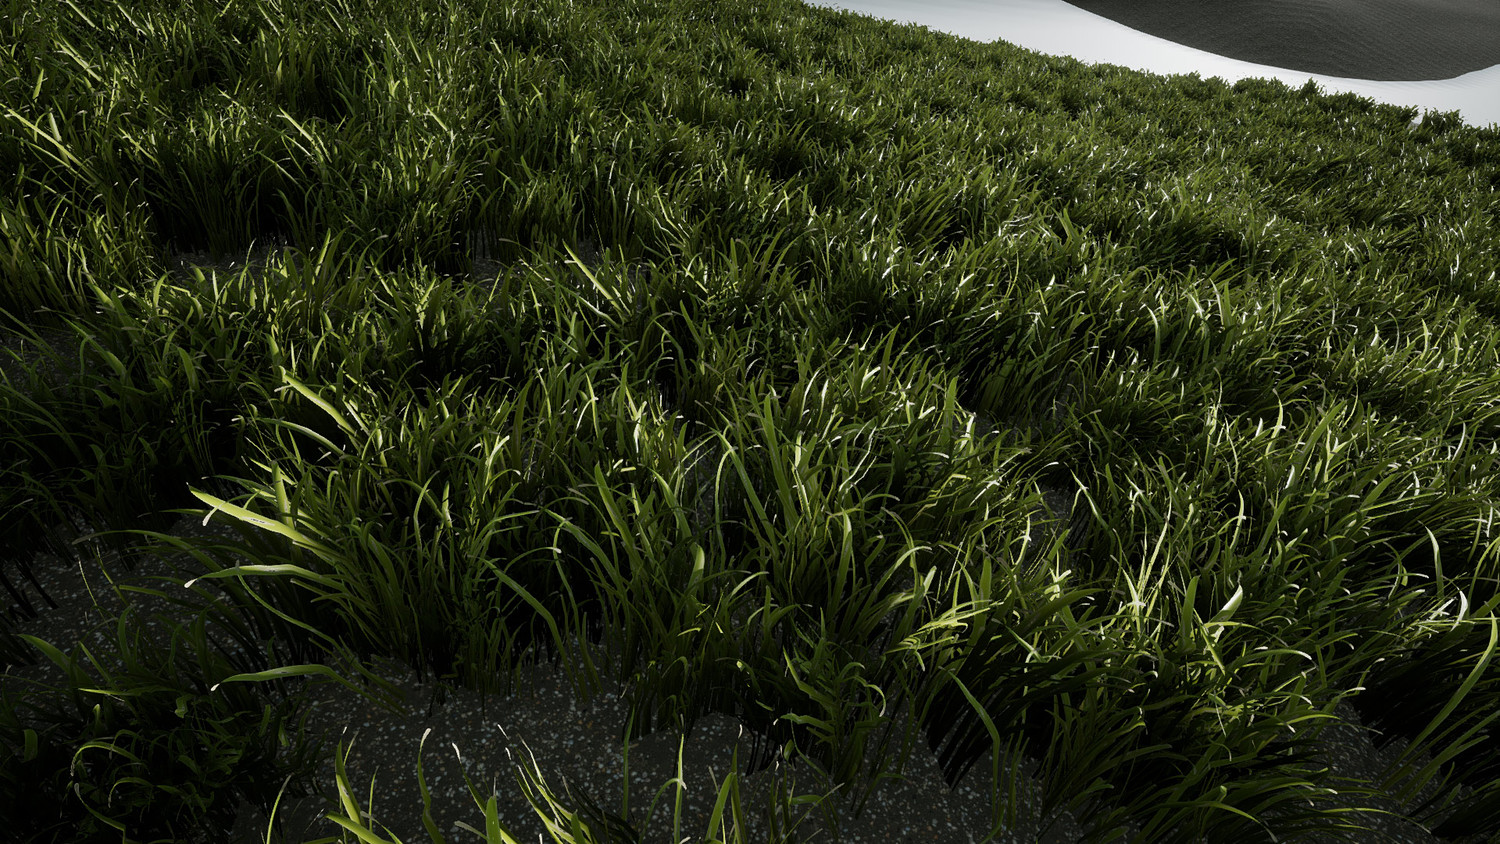 Foliage Essentials #1 - Grass & Greens [UE4]